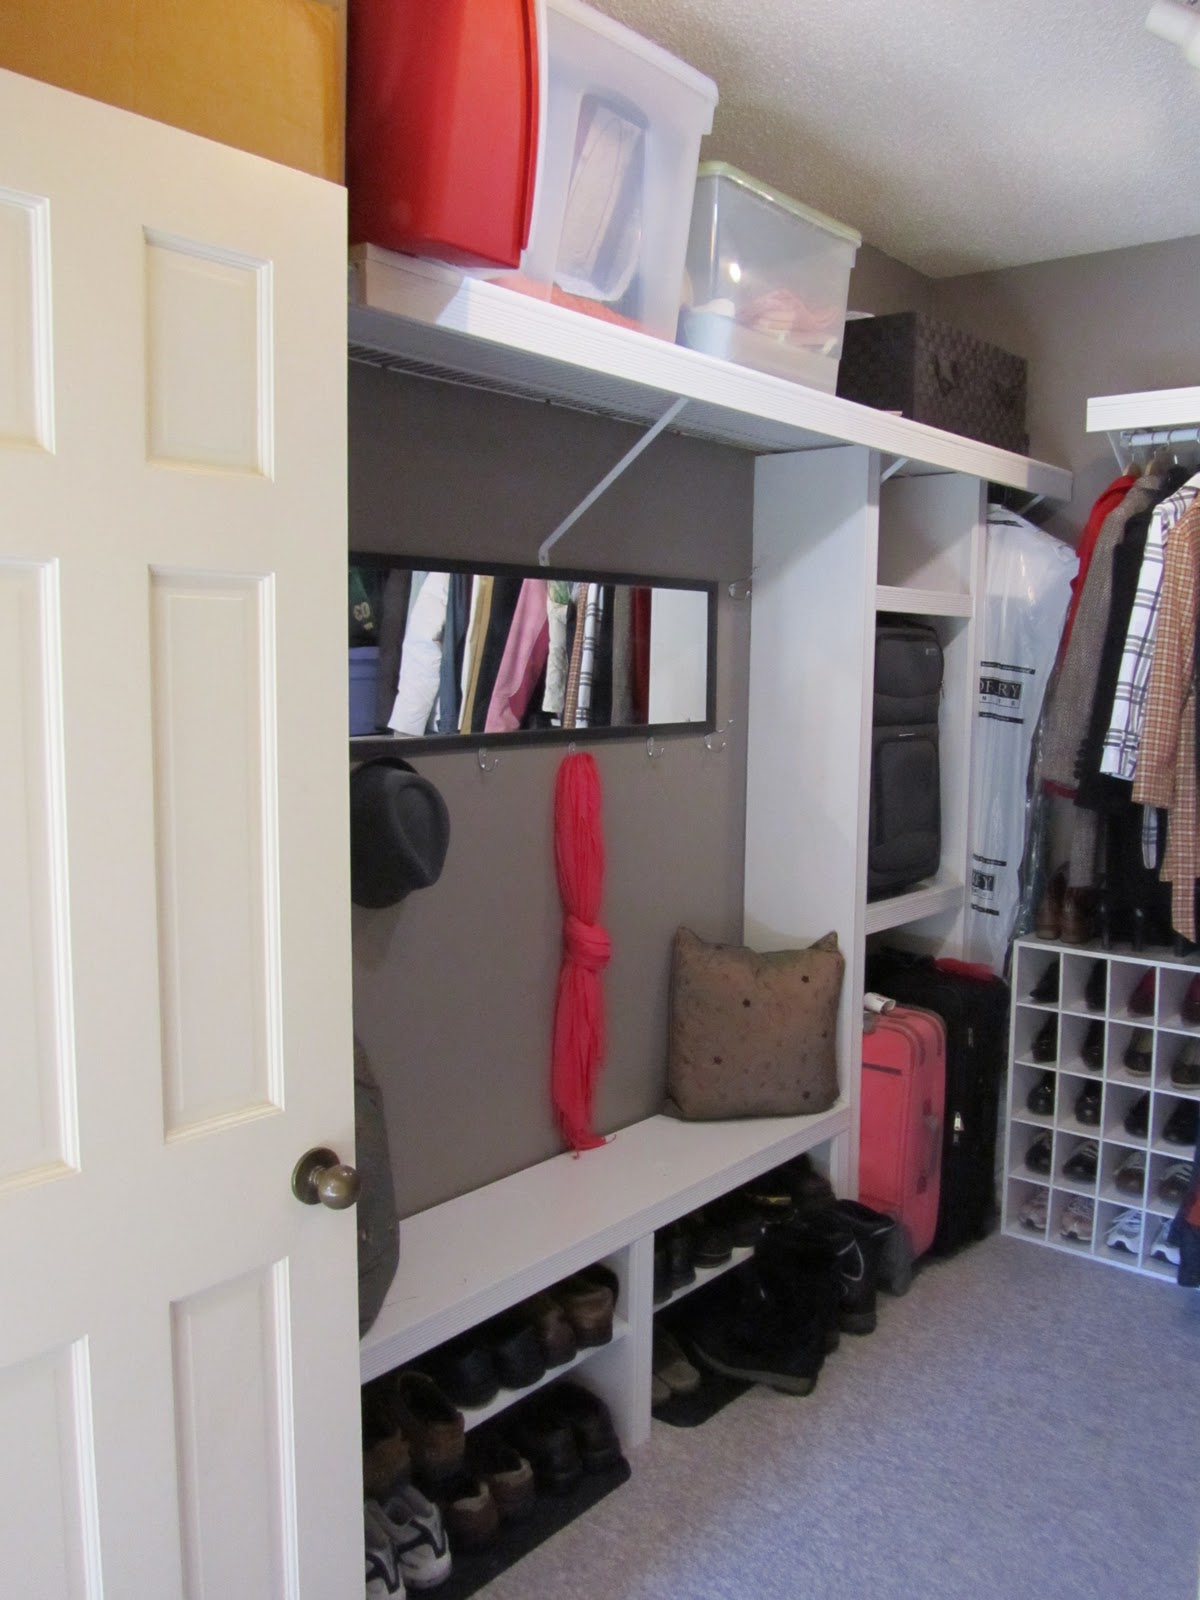 for shelves happy wire new hardware of full photos wardrobe diy with customcycled replace to kits shelving size barn lumber slat closet how wood unfinished ideas the inspiations custom